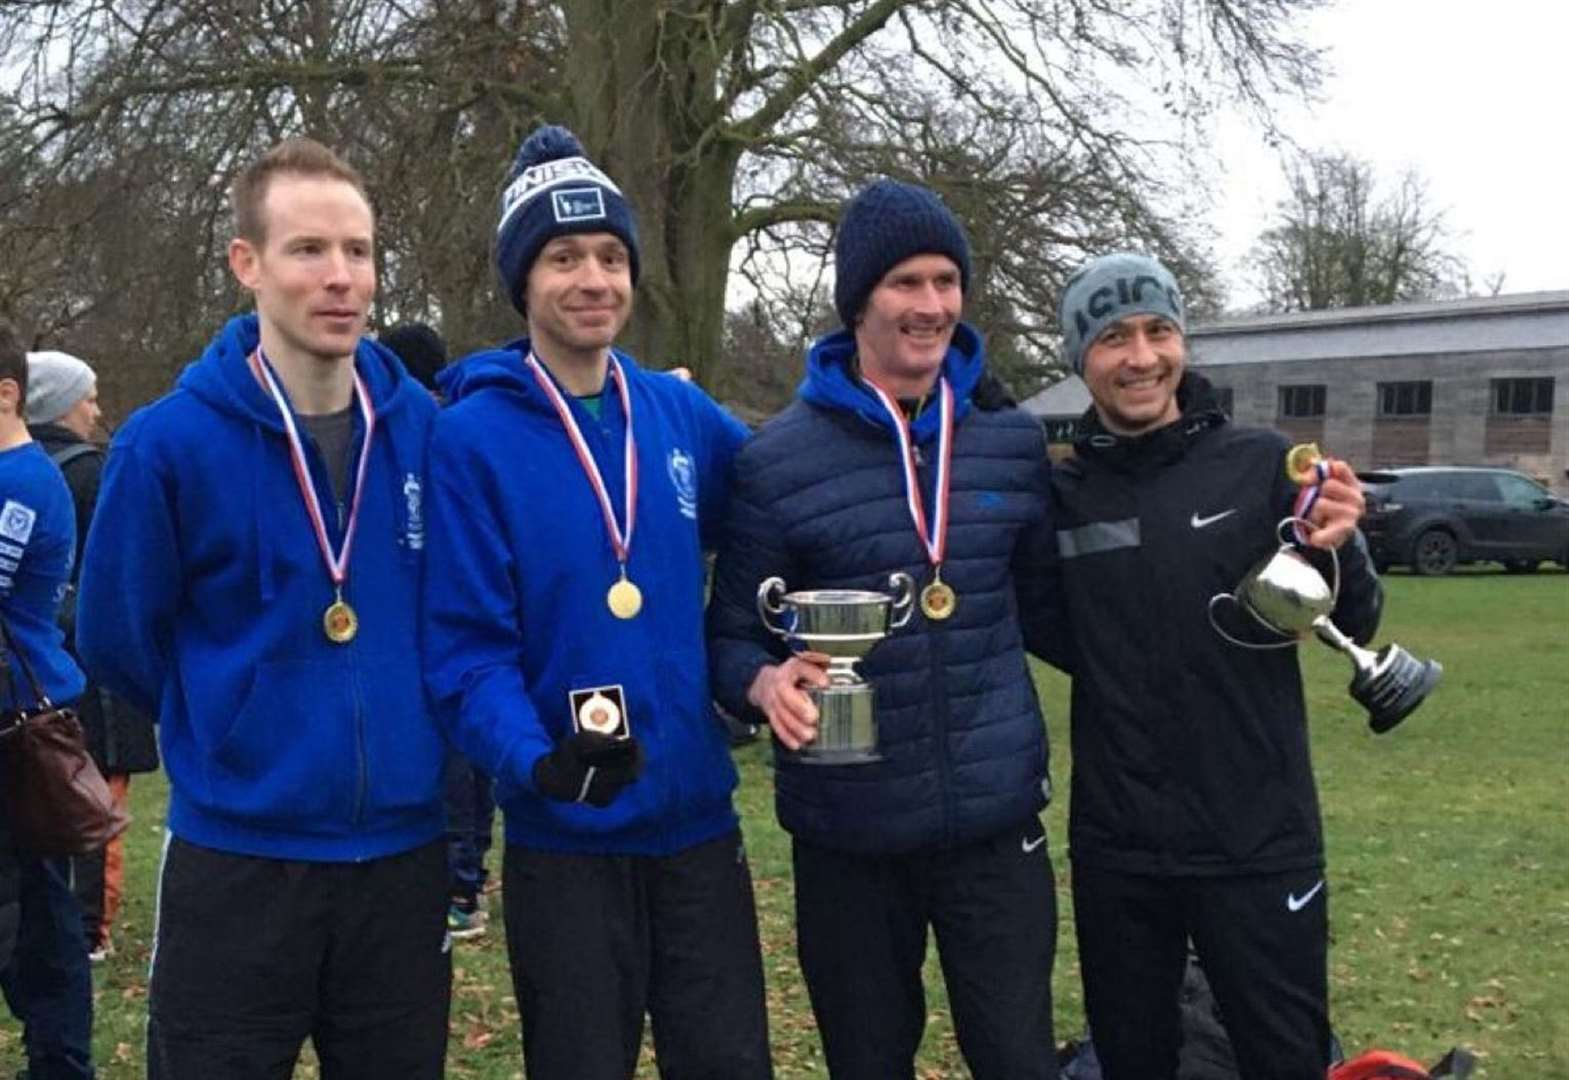 History made as the Joggers clinch title